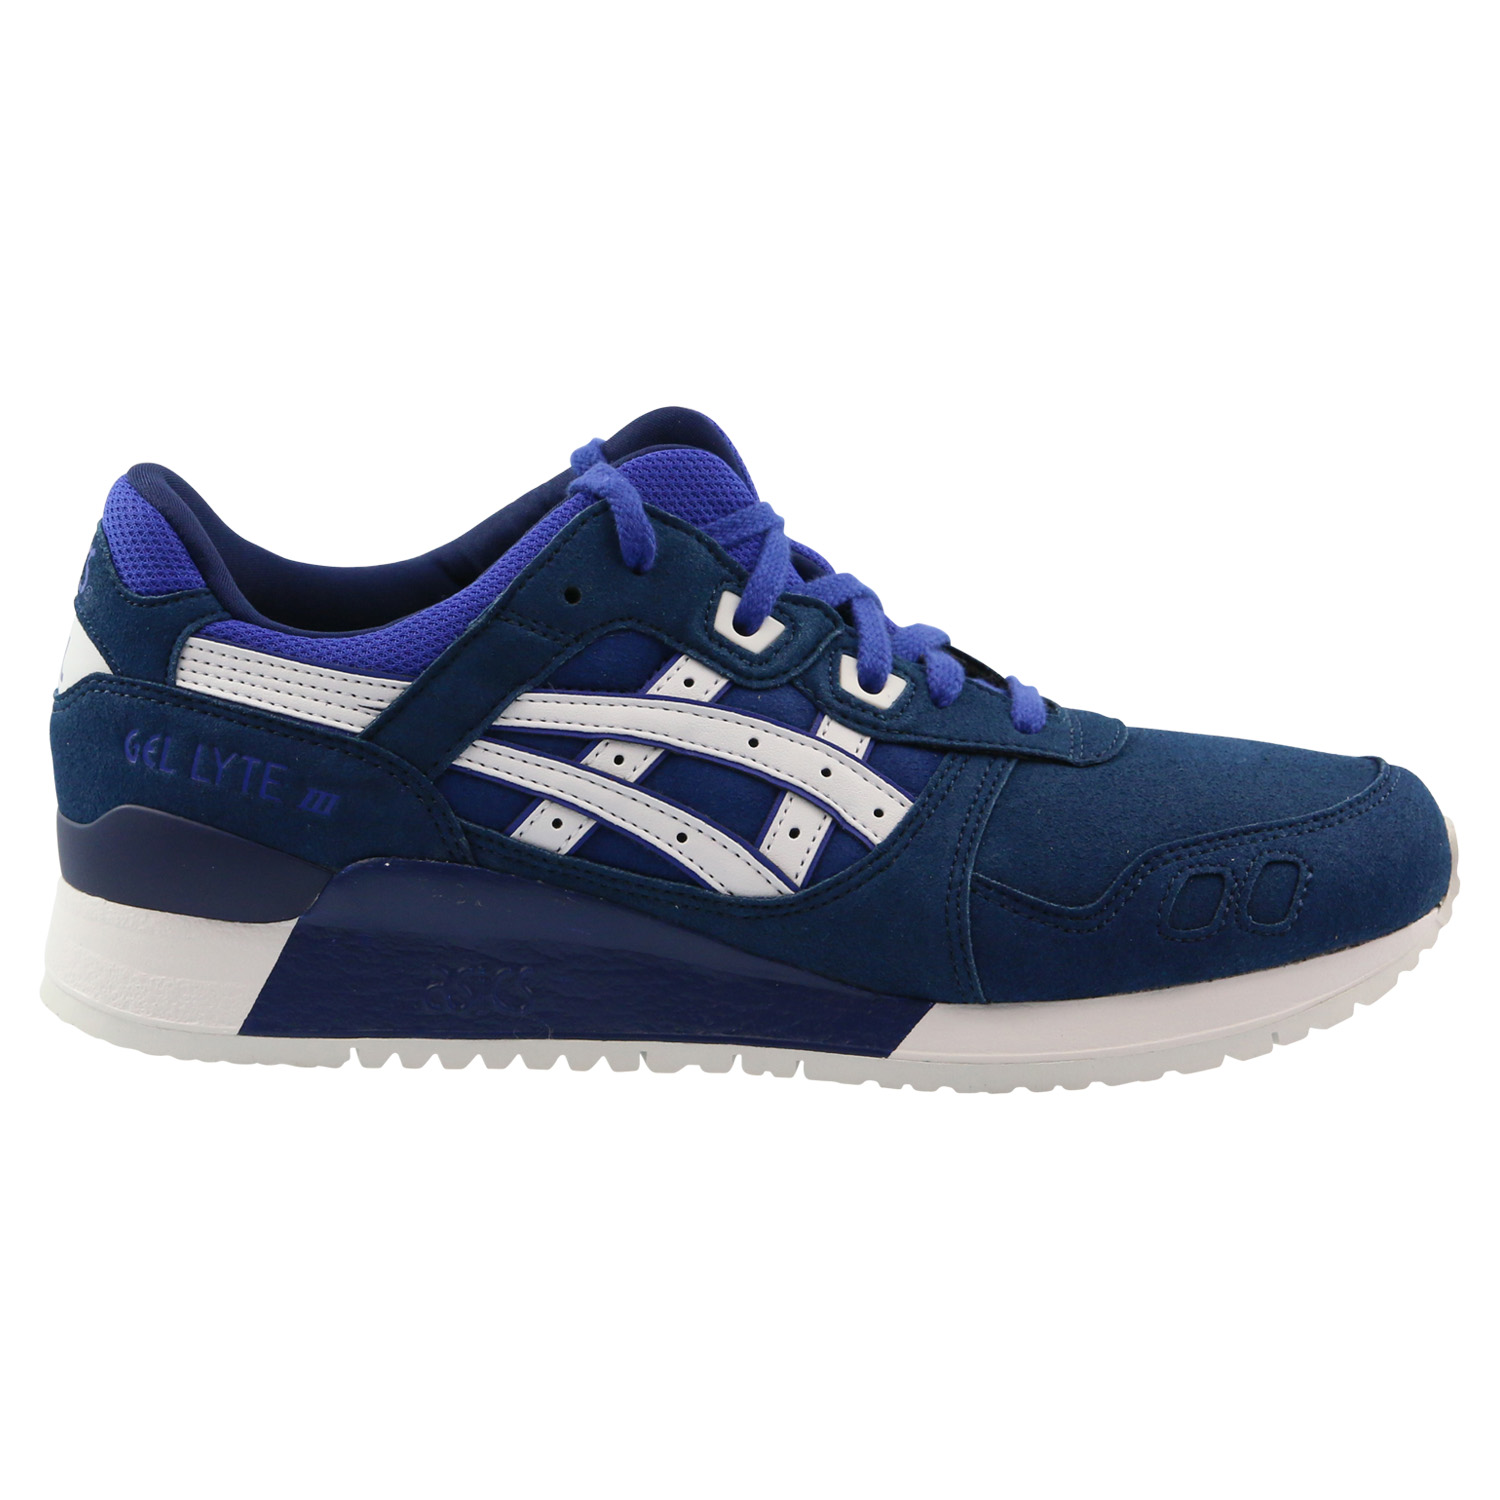 asics gel lyte iii schuhe turnschuhe sneaker herren ebay. Black Bedroom Furniture Sets. Home Design Ideas